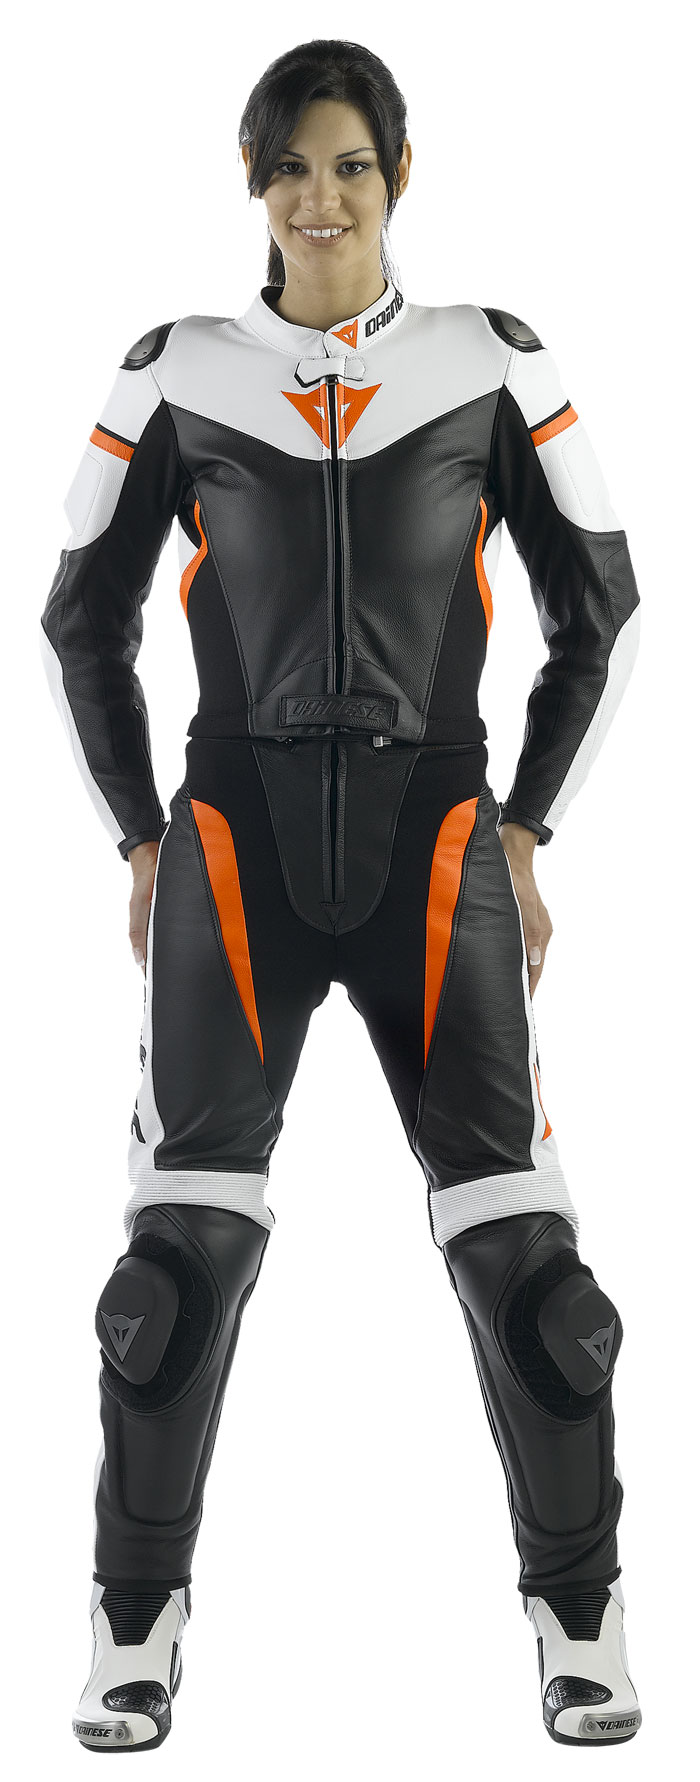 Dainese leather motorcycle suit divisible woman Avro Black White